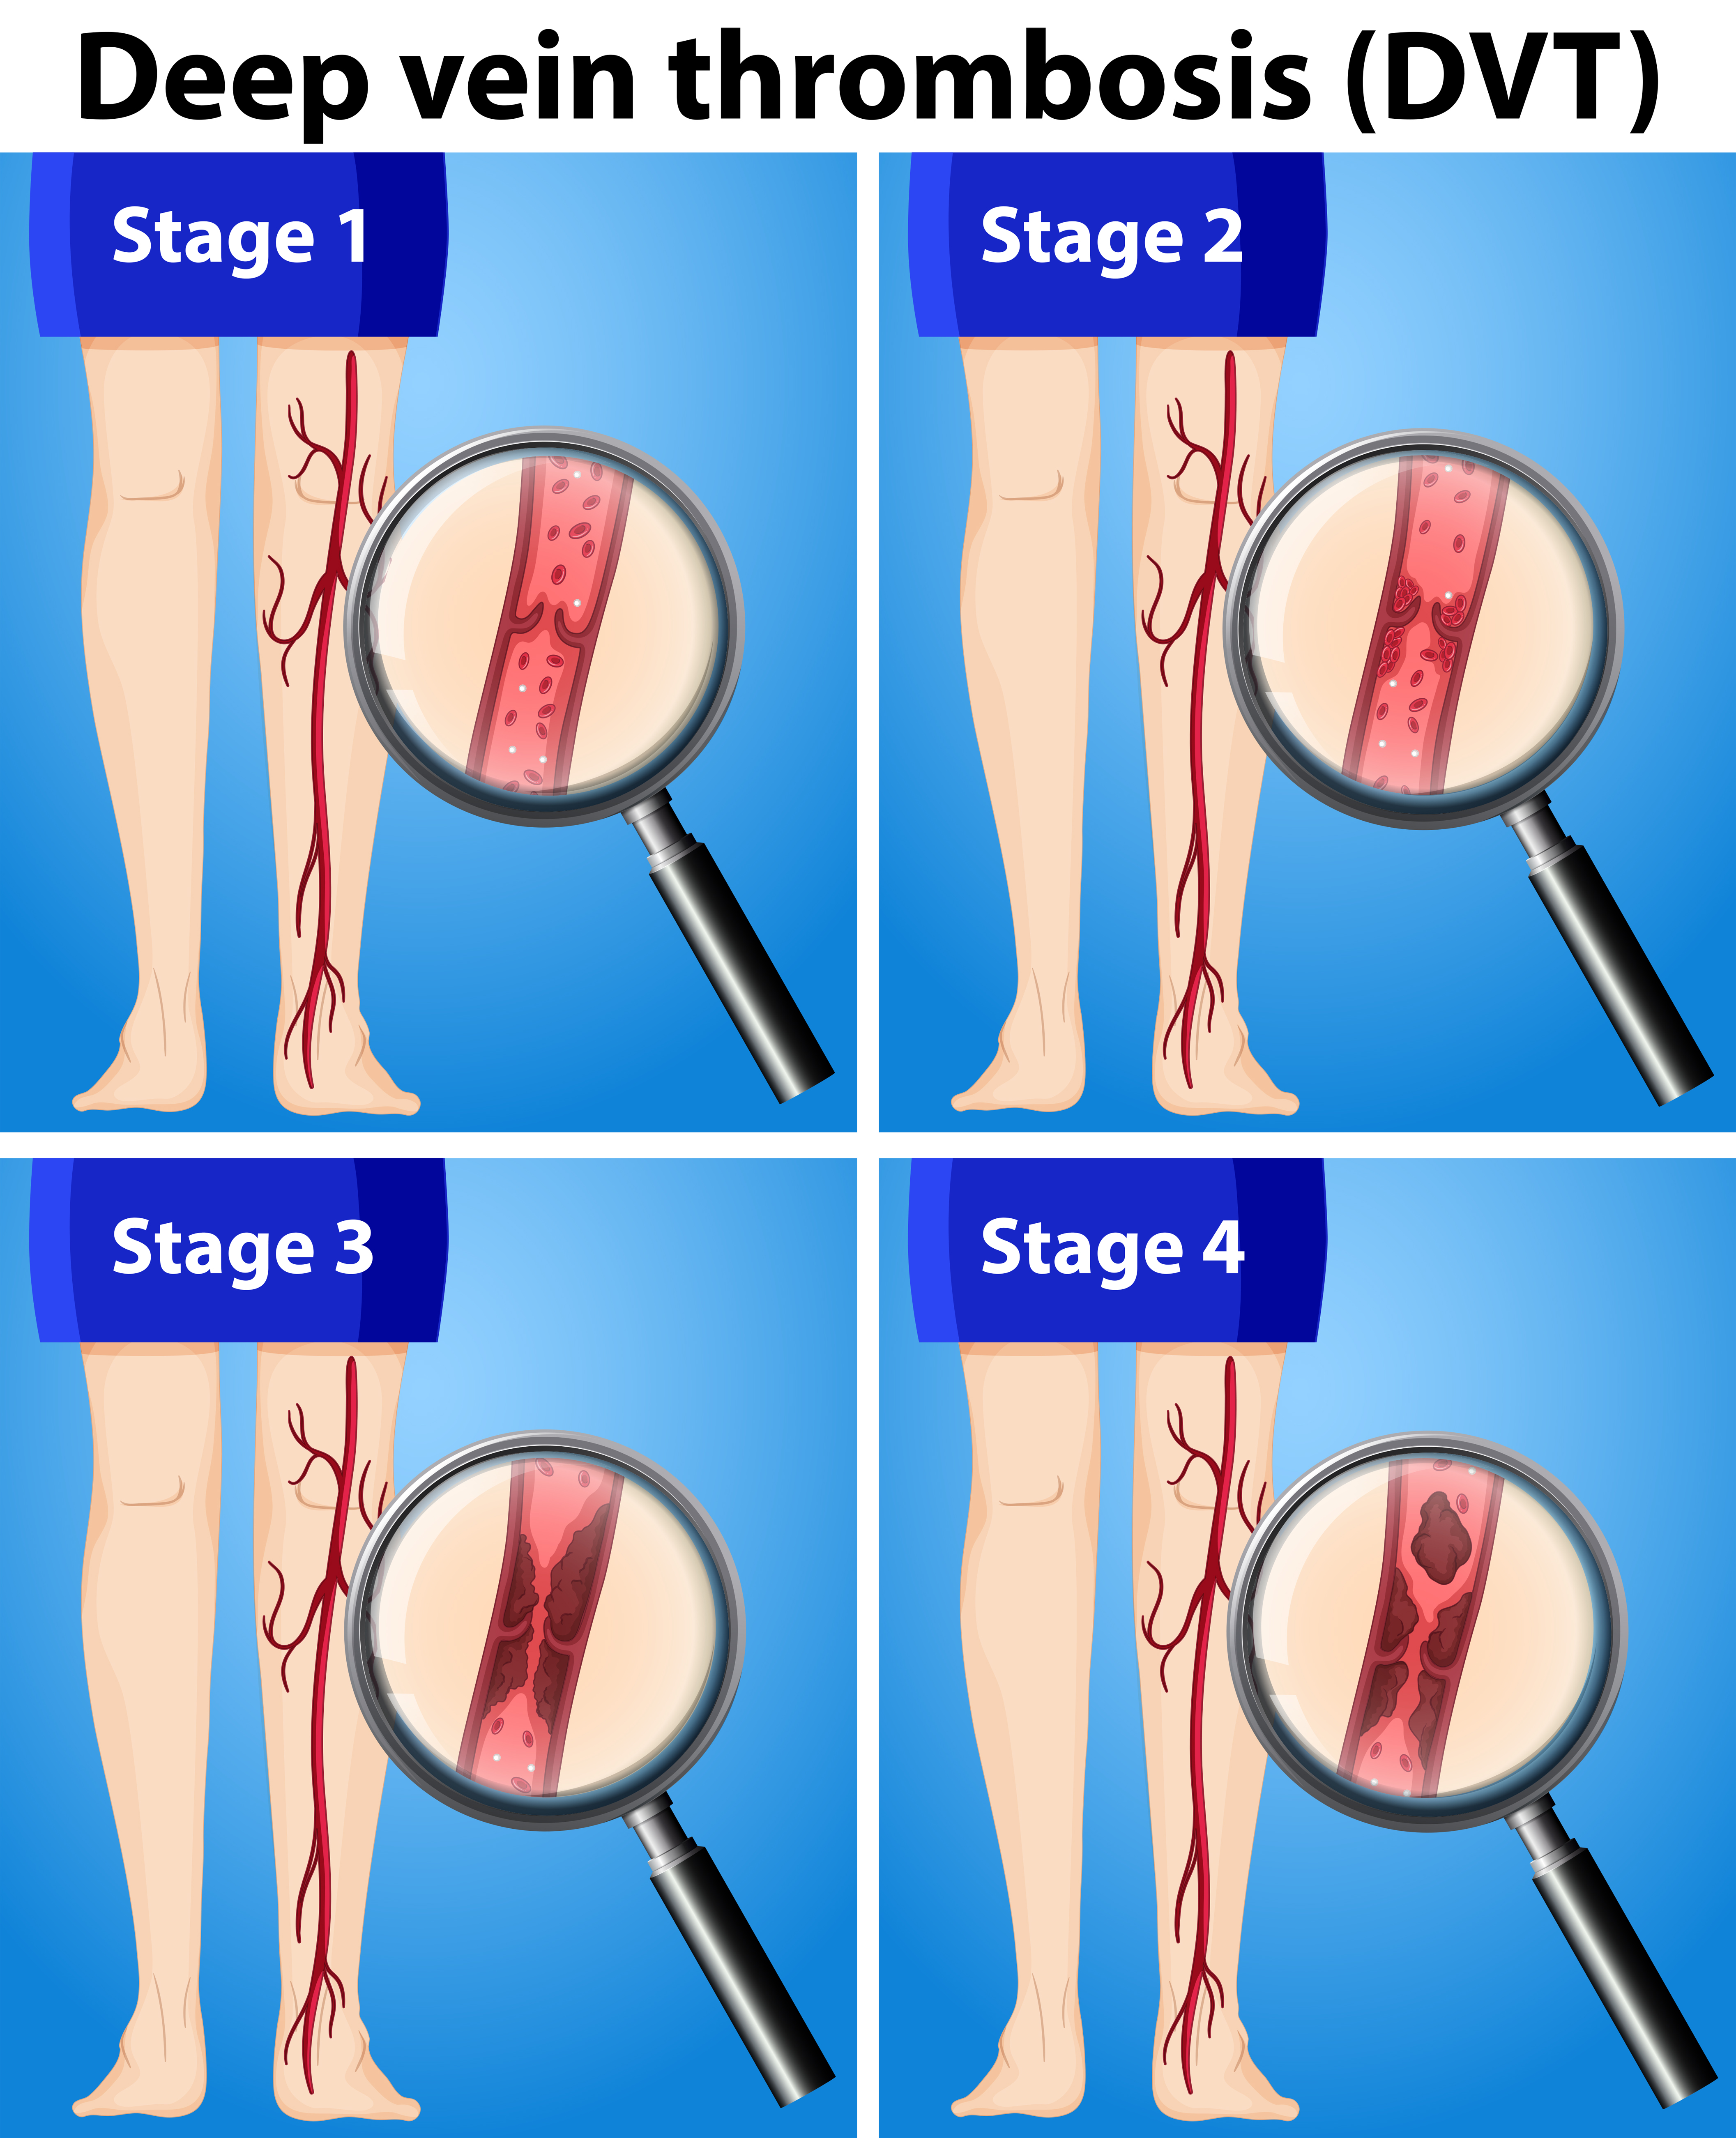 How Many People Get DVT While Not on Blood Thinners?